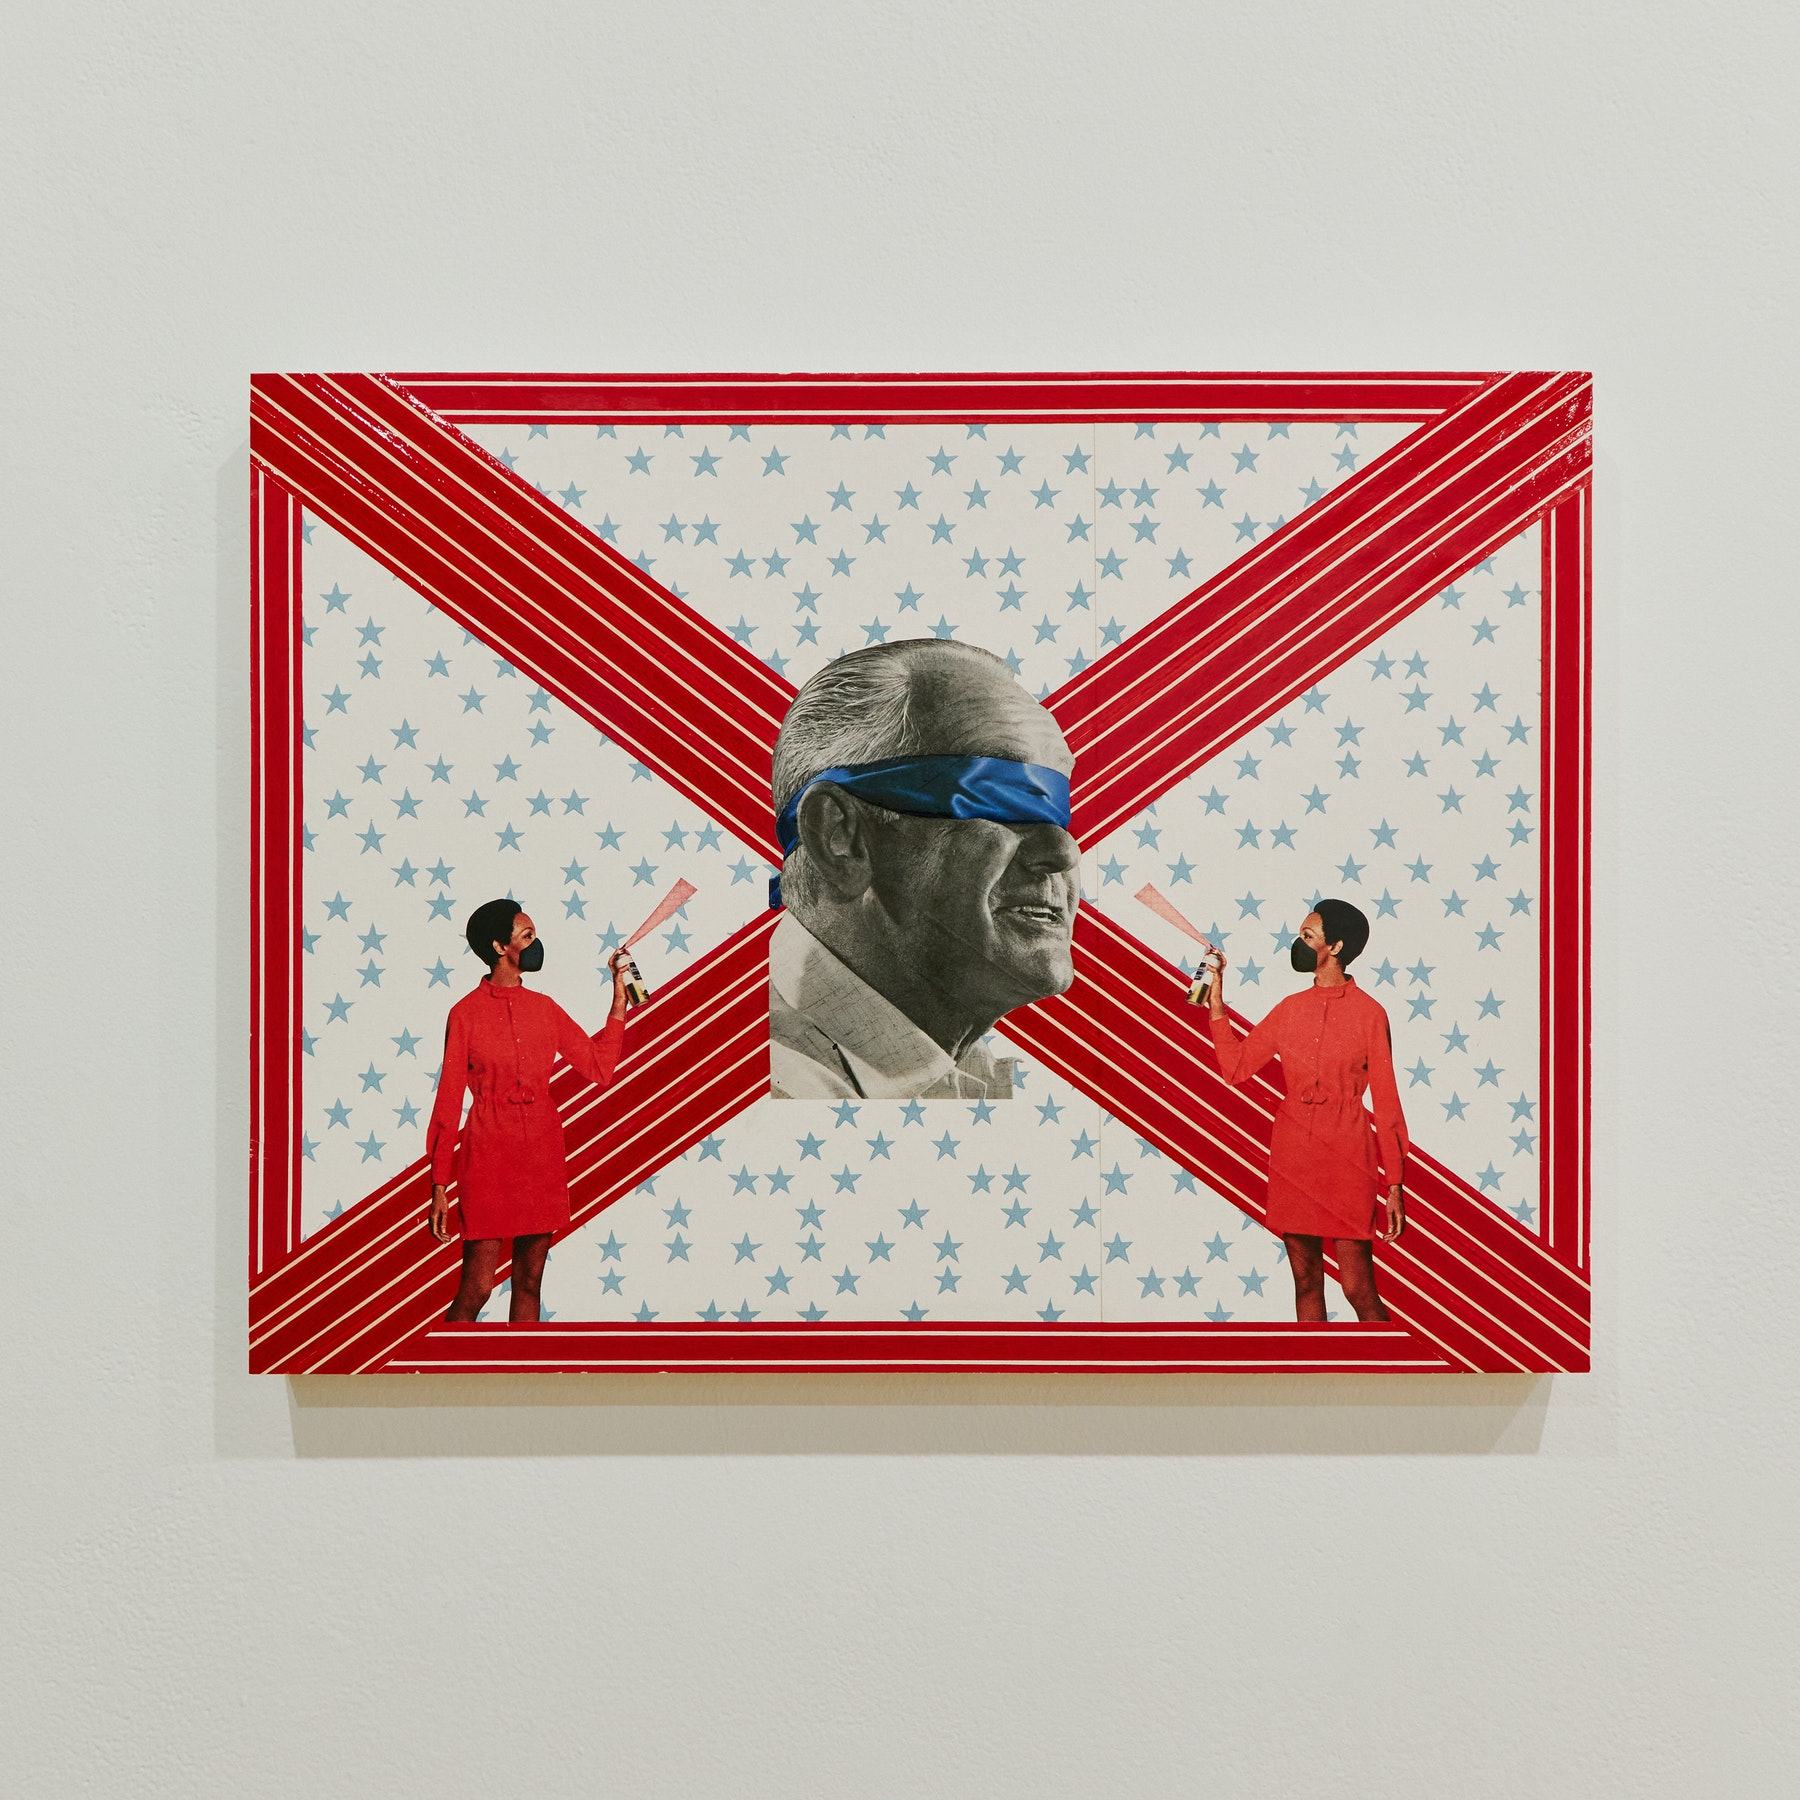 """Genevieve Gaignard """"Disinfect Our Politics,"""" 2020 Mixed media on panel 18 x 24 x 1.5"""" [HxWxD] (45.72 x 60.96 x 3.81 cm) Inventory #GEN321 Courtesy of the artist and Vielmetter Los Angeles Photo credit: Megan Haley"""